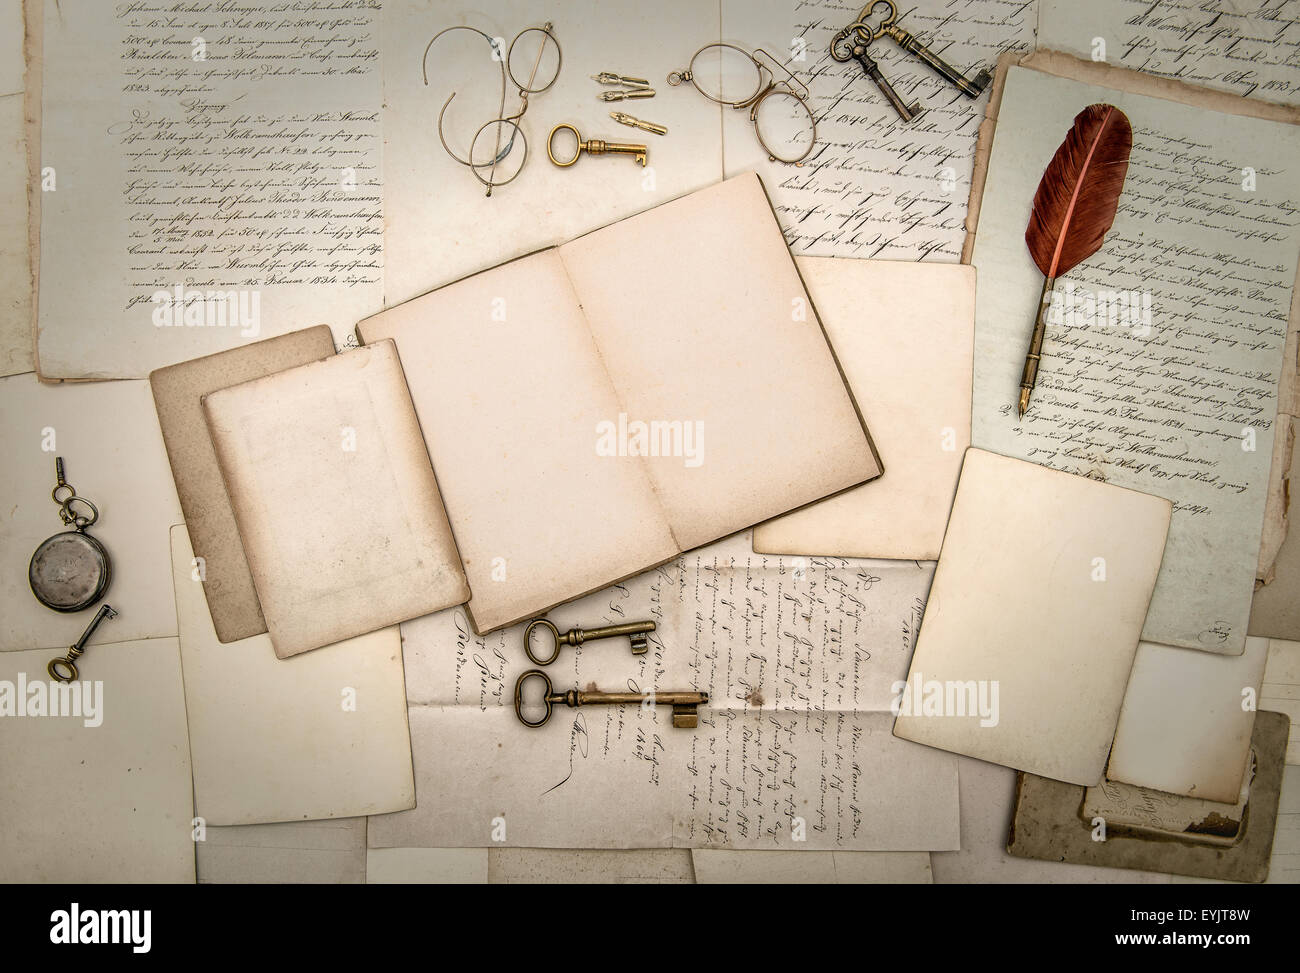 Antique accessories and office tolls, old letters and postcards. Nostalgic scrapbook background - Stock Image